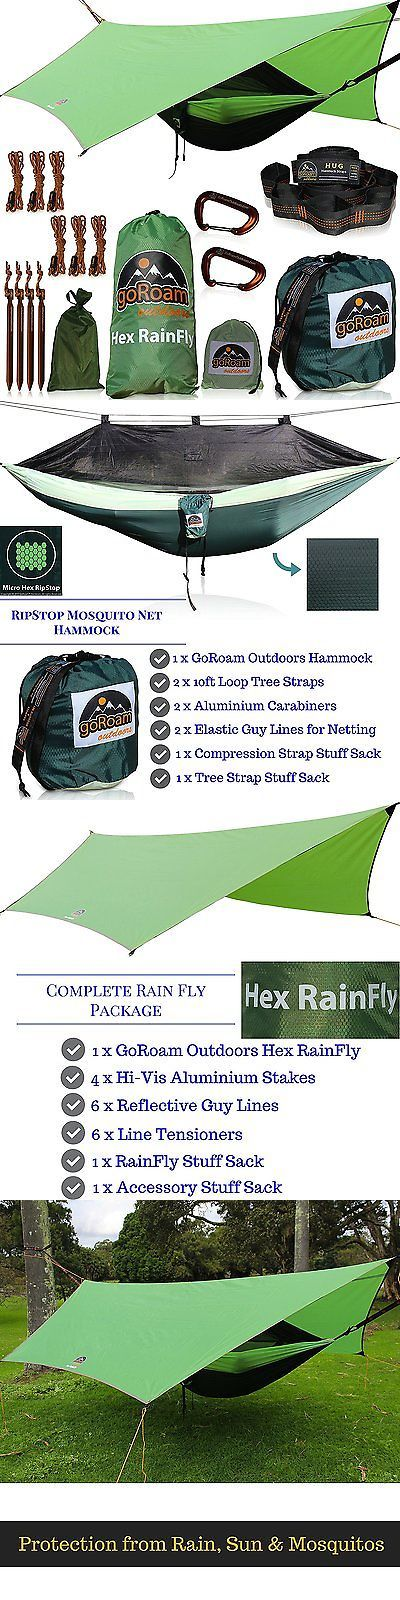 Tent and Canopy Accessories 36120: Goroam Outdoors Camping Hammock With Mosquito Net And Rainfly. Hex Rain Fly Tarp -> BUY IT NOW ONLY: $131.33 on eBay!